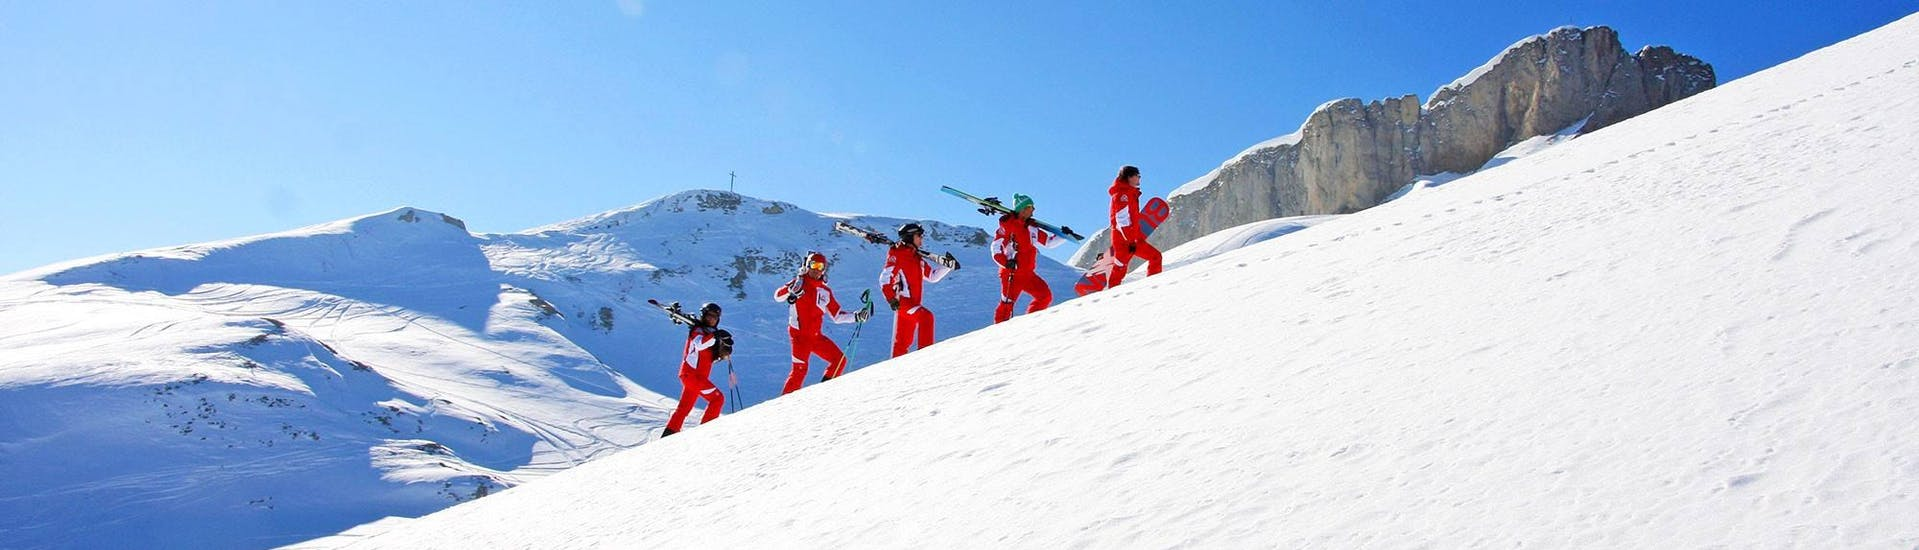 private-snowboarding-lessons-for-kids--adults-of-all-levels-privatskischule-kleinwalsertal-riezlern-hero